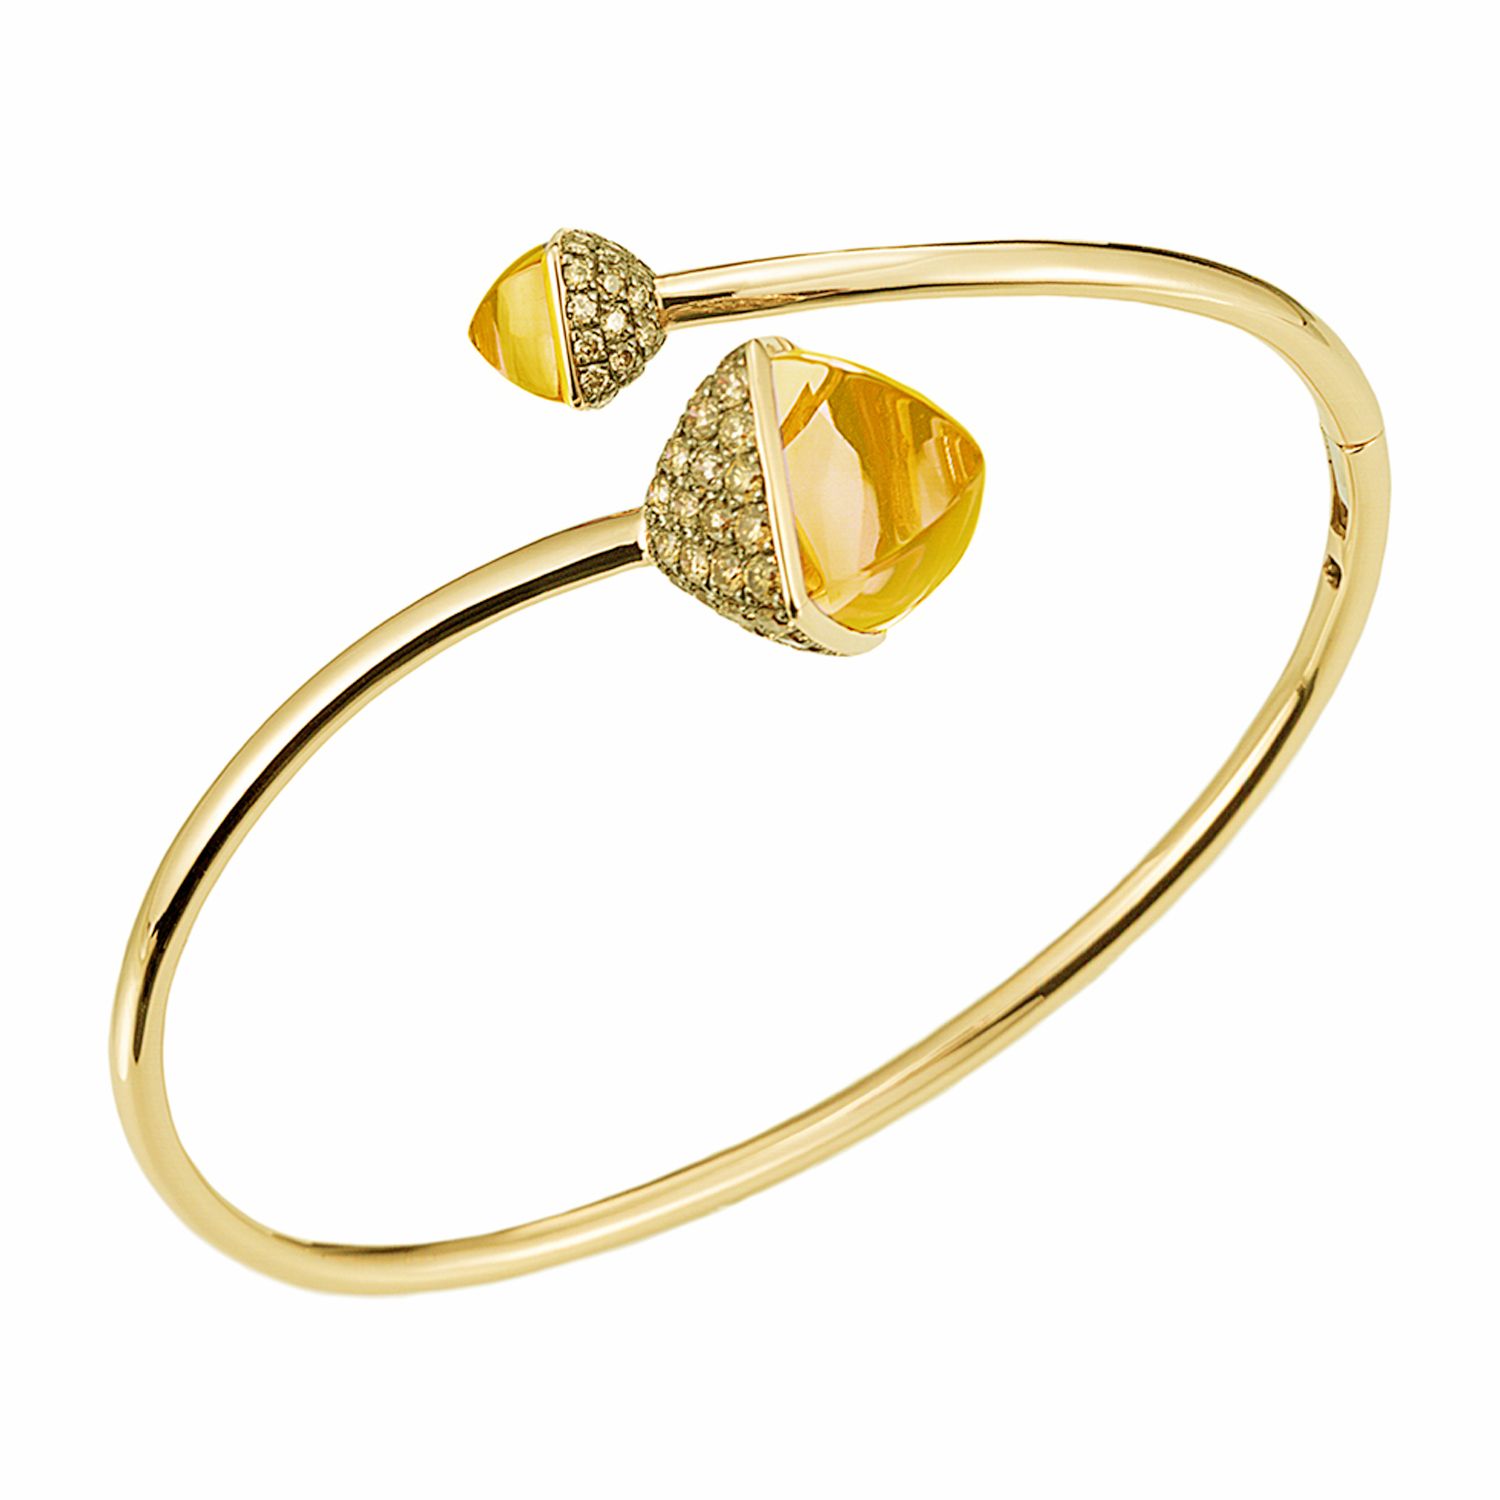 Diamond and Citrine Bypass Bracelet in 14k Yellow Gold by Ax Jewelry